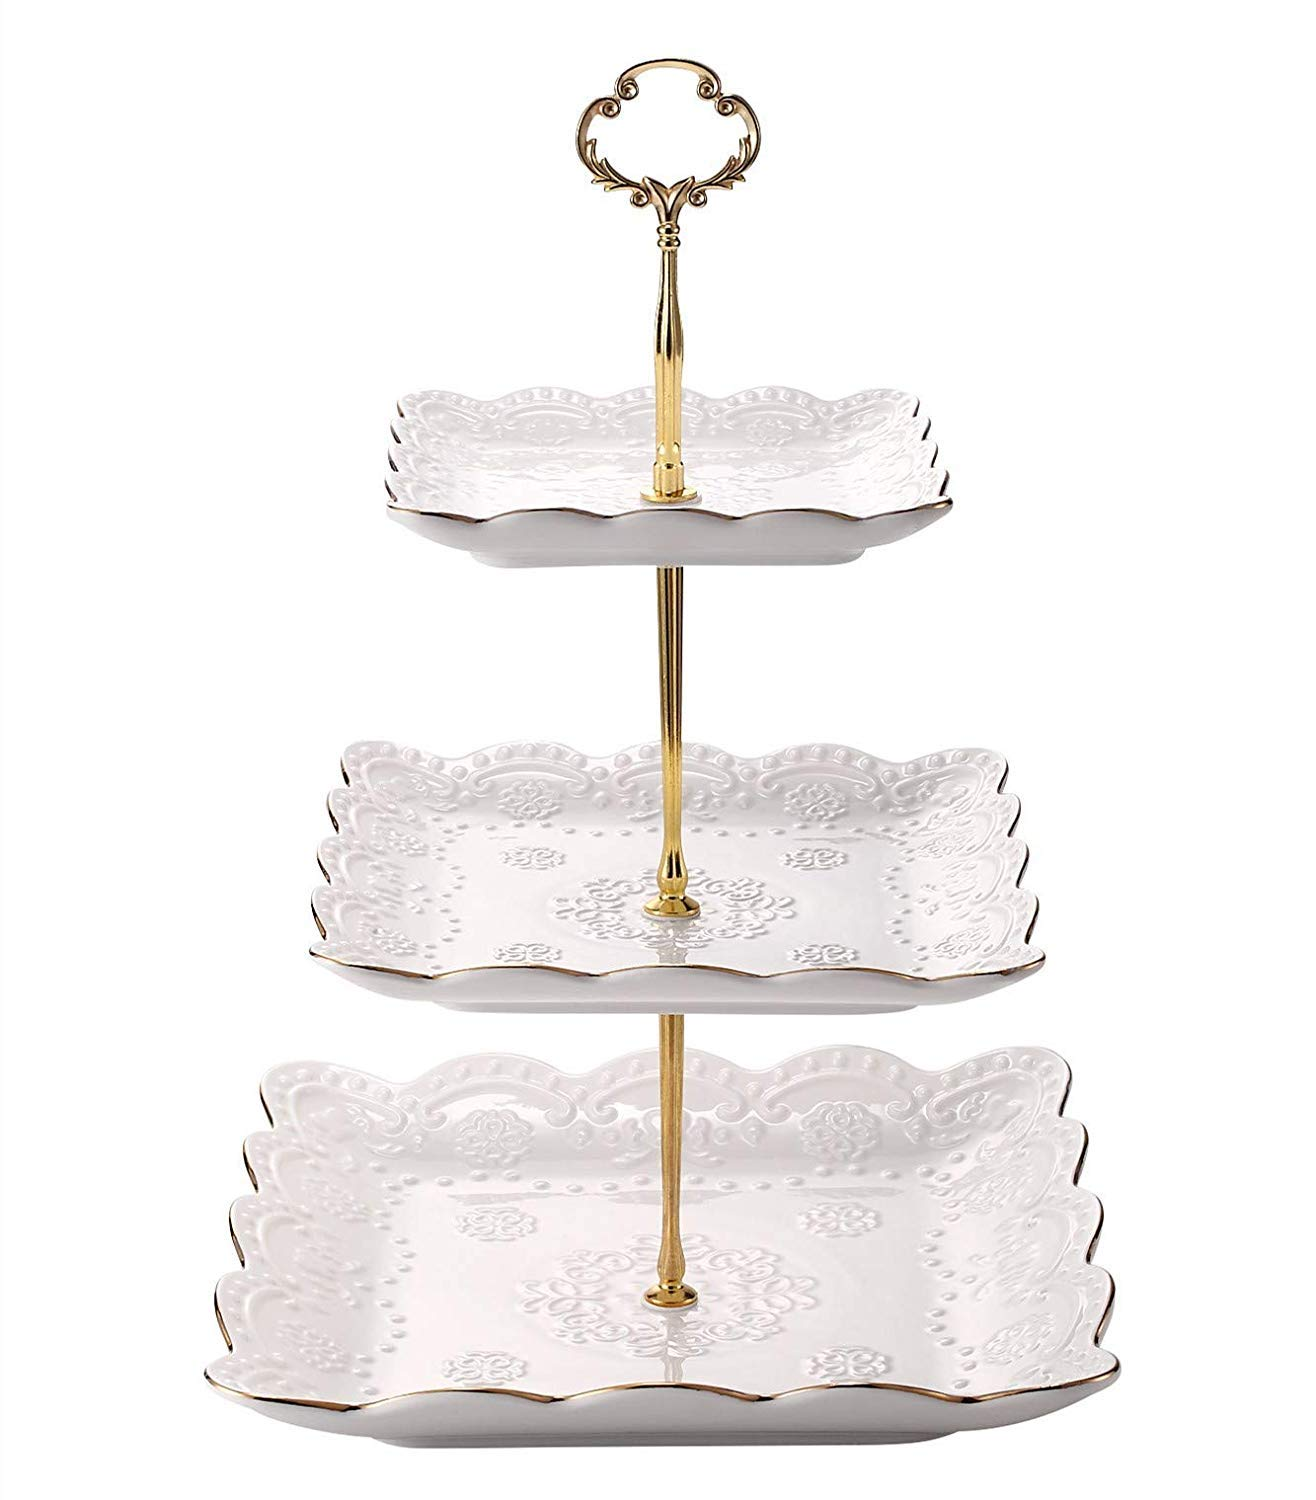 EAMATE 3-tier Square Ceramic CupCake Stand for Party or Holiday Hosting (with Gold Dessert)